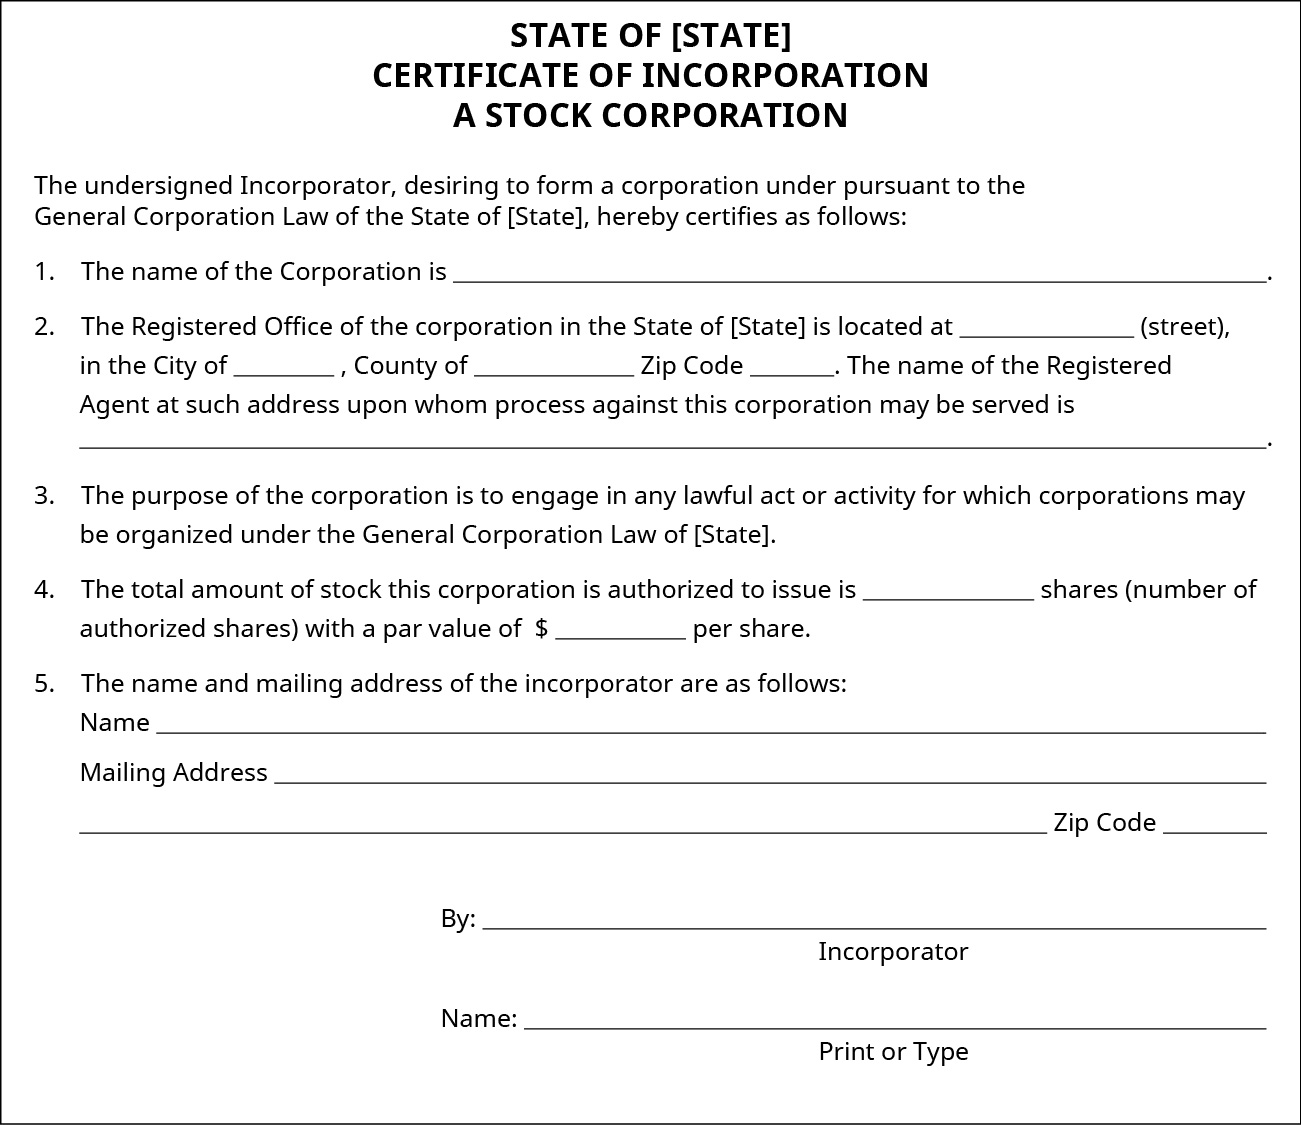 "State of Incorporation form that states: ""The undersigned Incorporator, desiring to form a corporation under pursuant to the General Corporation Law of the State of [State], hereby certifies as follows:"" and leaves space for the incorporator to fill in the name of the corporation, the address (including the county) of the corporation, the name of the registered agent, the total amount of stock the corporation is authorized to issue and the price per share, and the name and mailing address of the incorporator. The form also states: ""The purpose of the corporation is to engage in any lawful act or activity for which corporations may be organized under the General Corporation Law of [State]."" The incorporator must also sign the form."